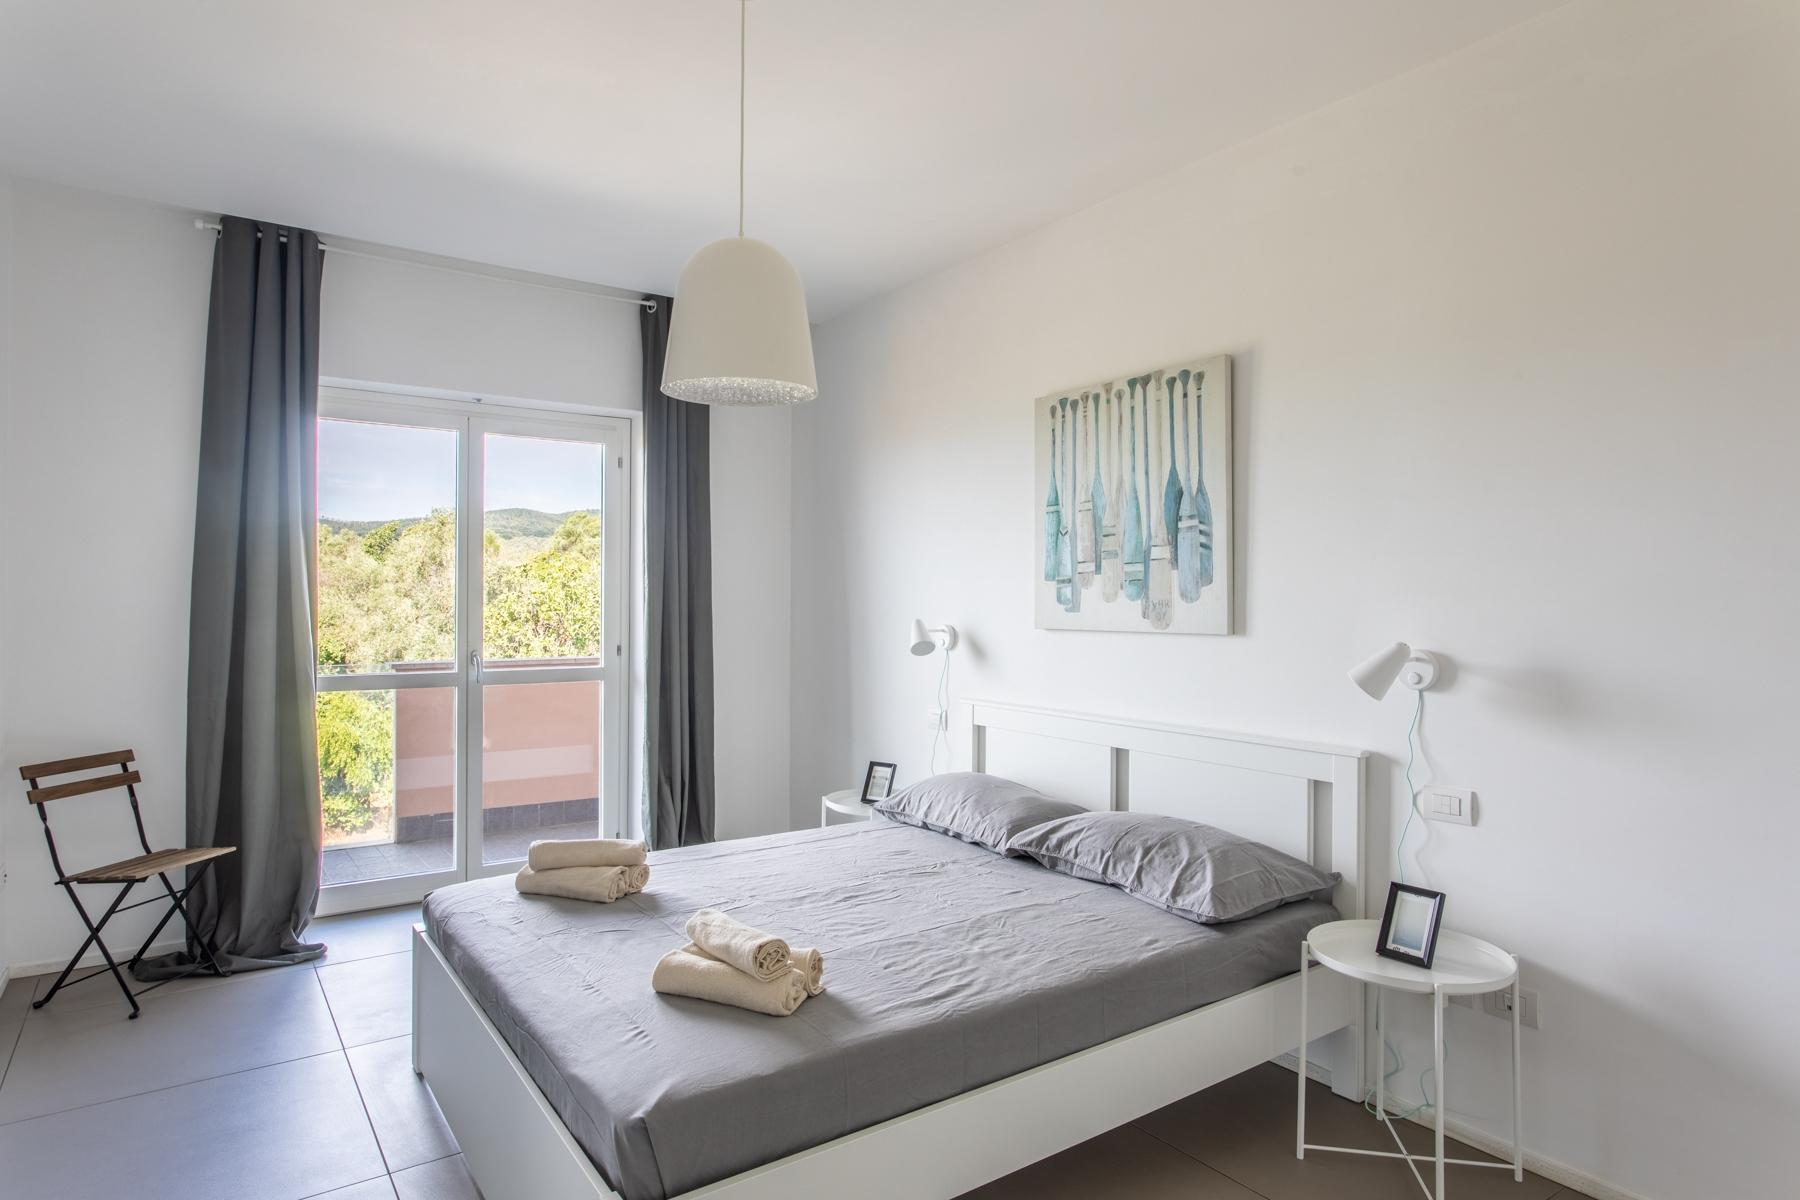 Front Lake Renovated apartment in Trevignano - 9